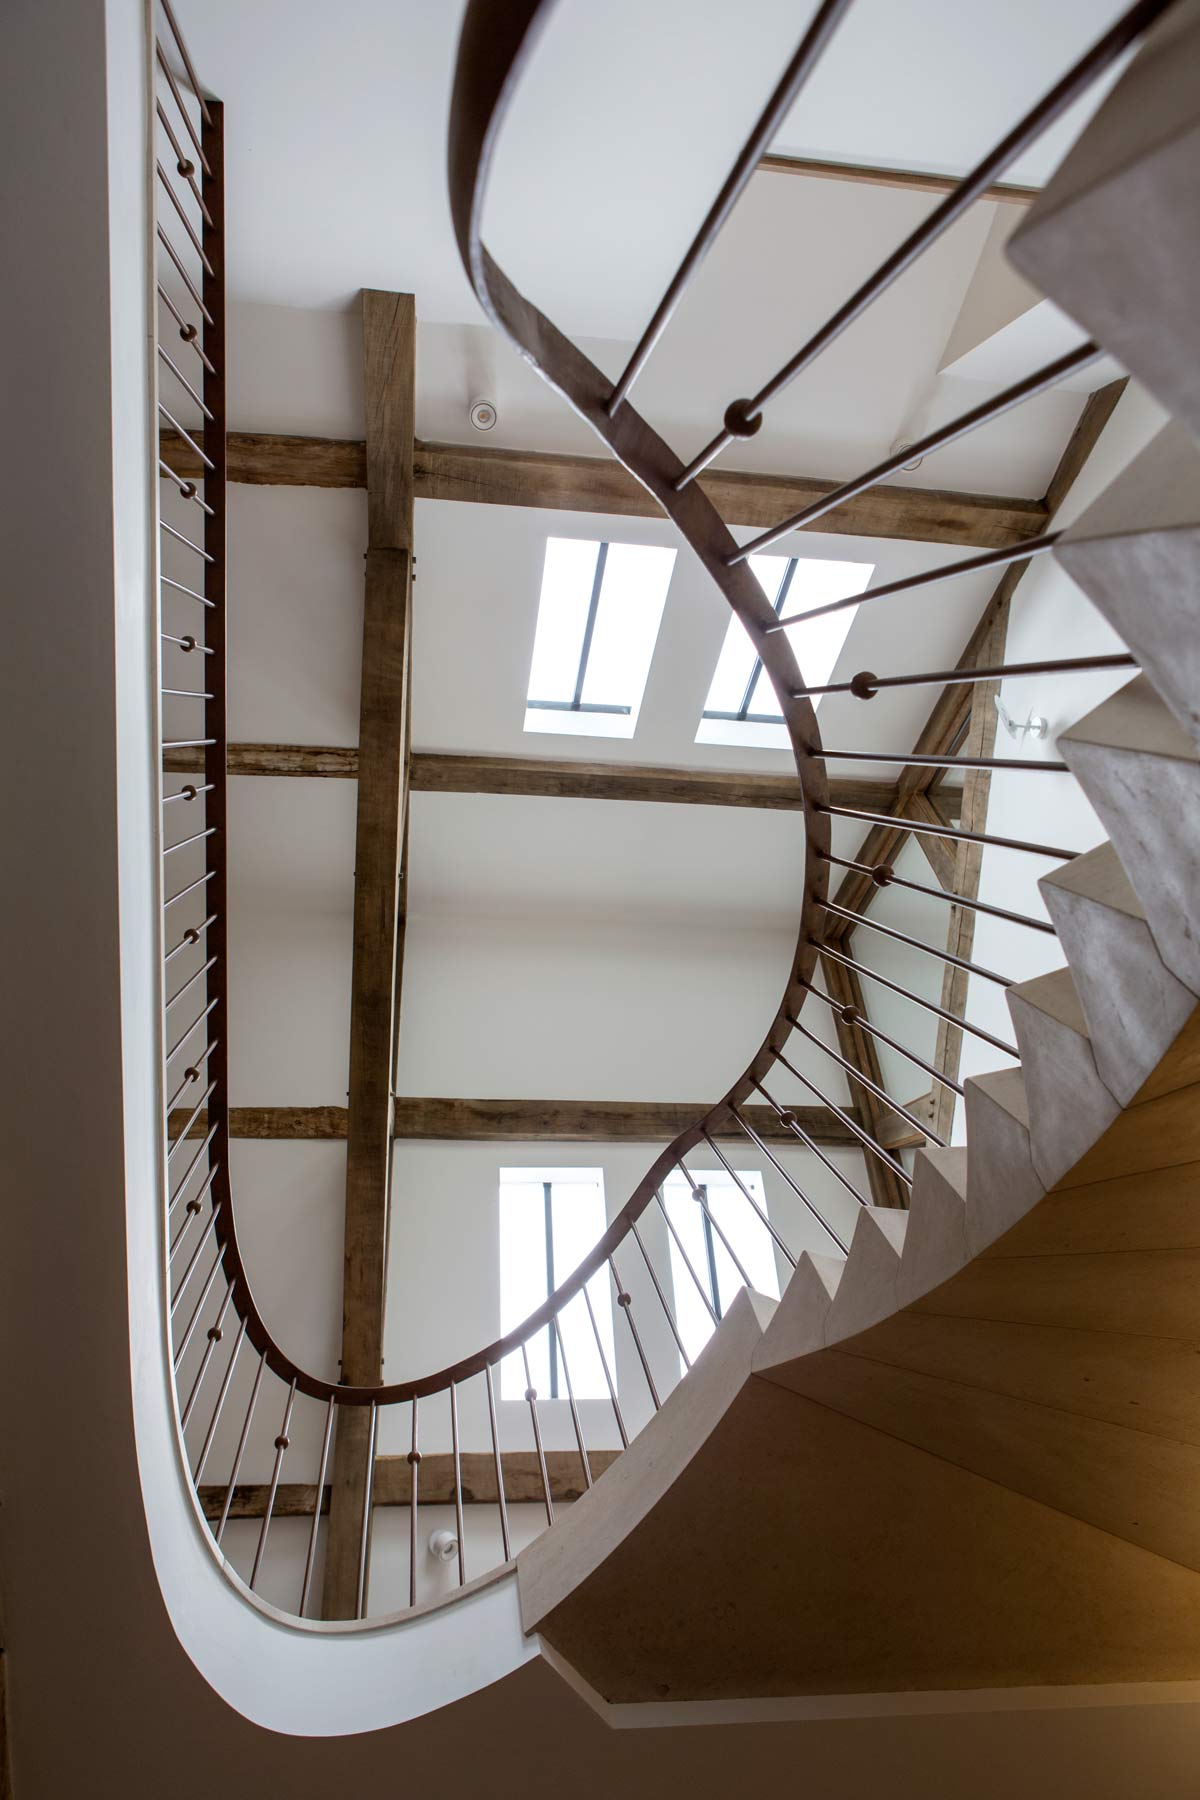 sculptural-curved-limestone-staircase-3-iron-spindles-ballustrade-oxfordshire-rogue-designs-ian-knapper.jpg